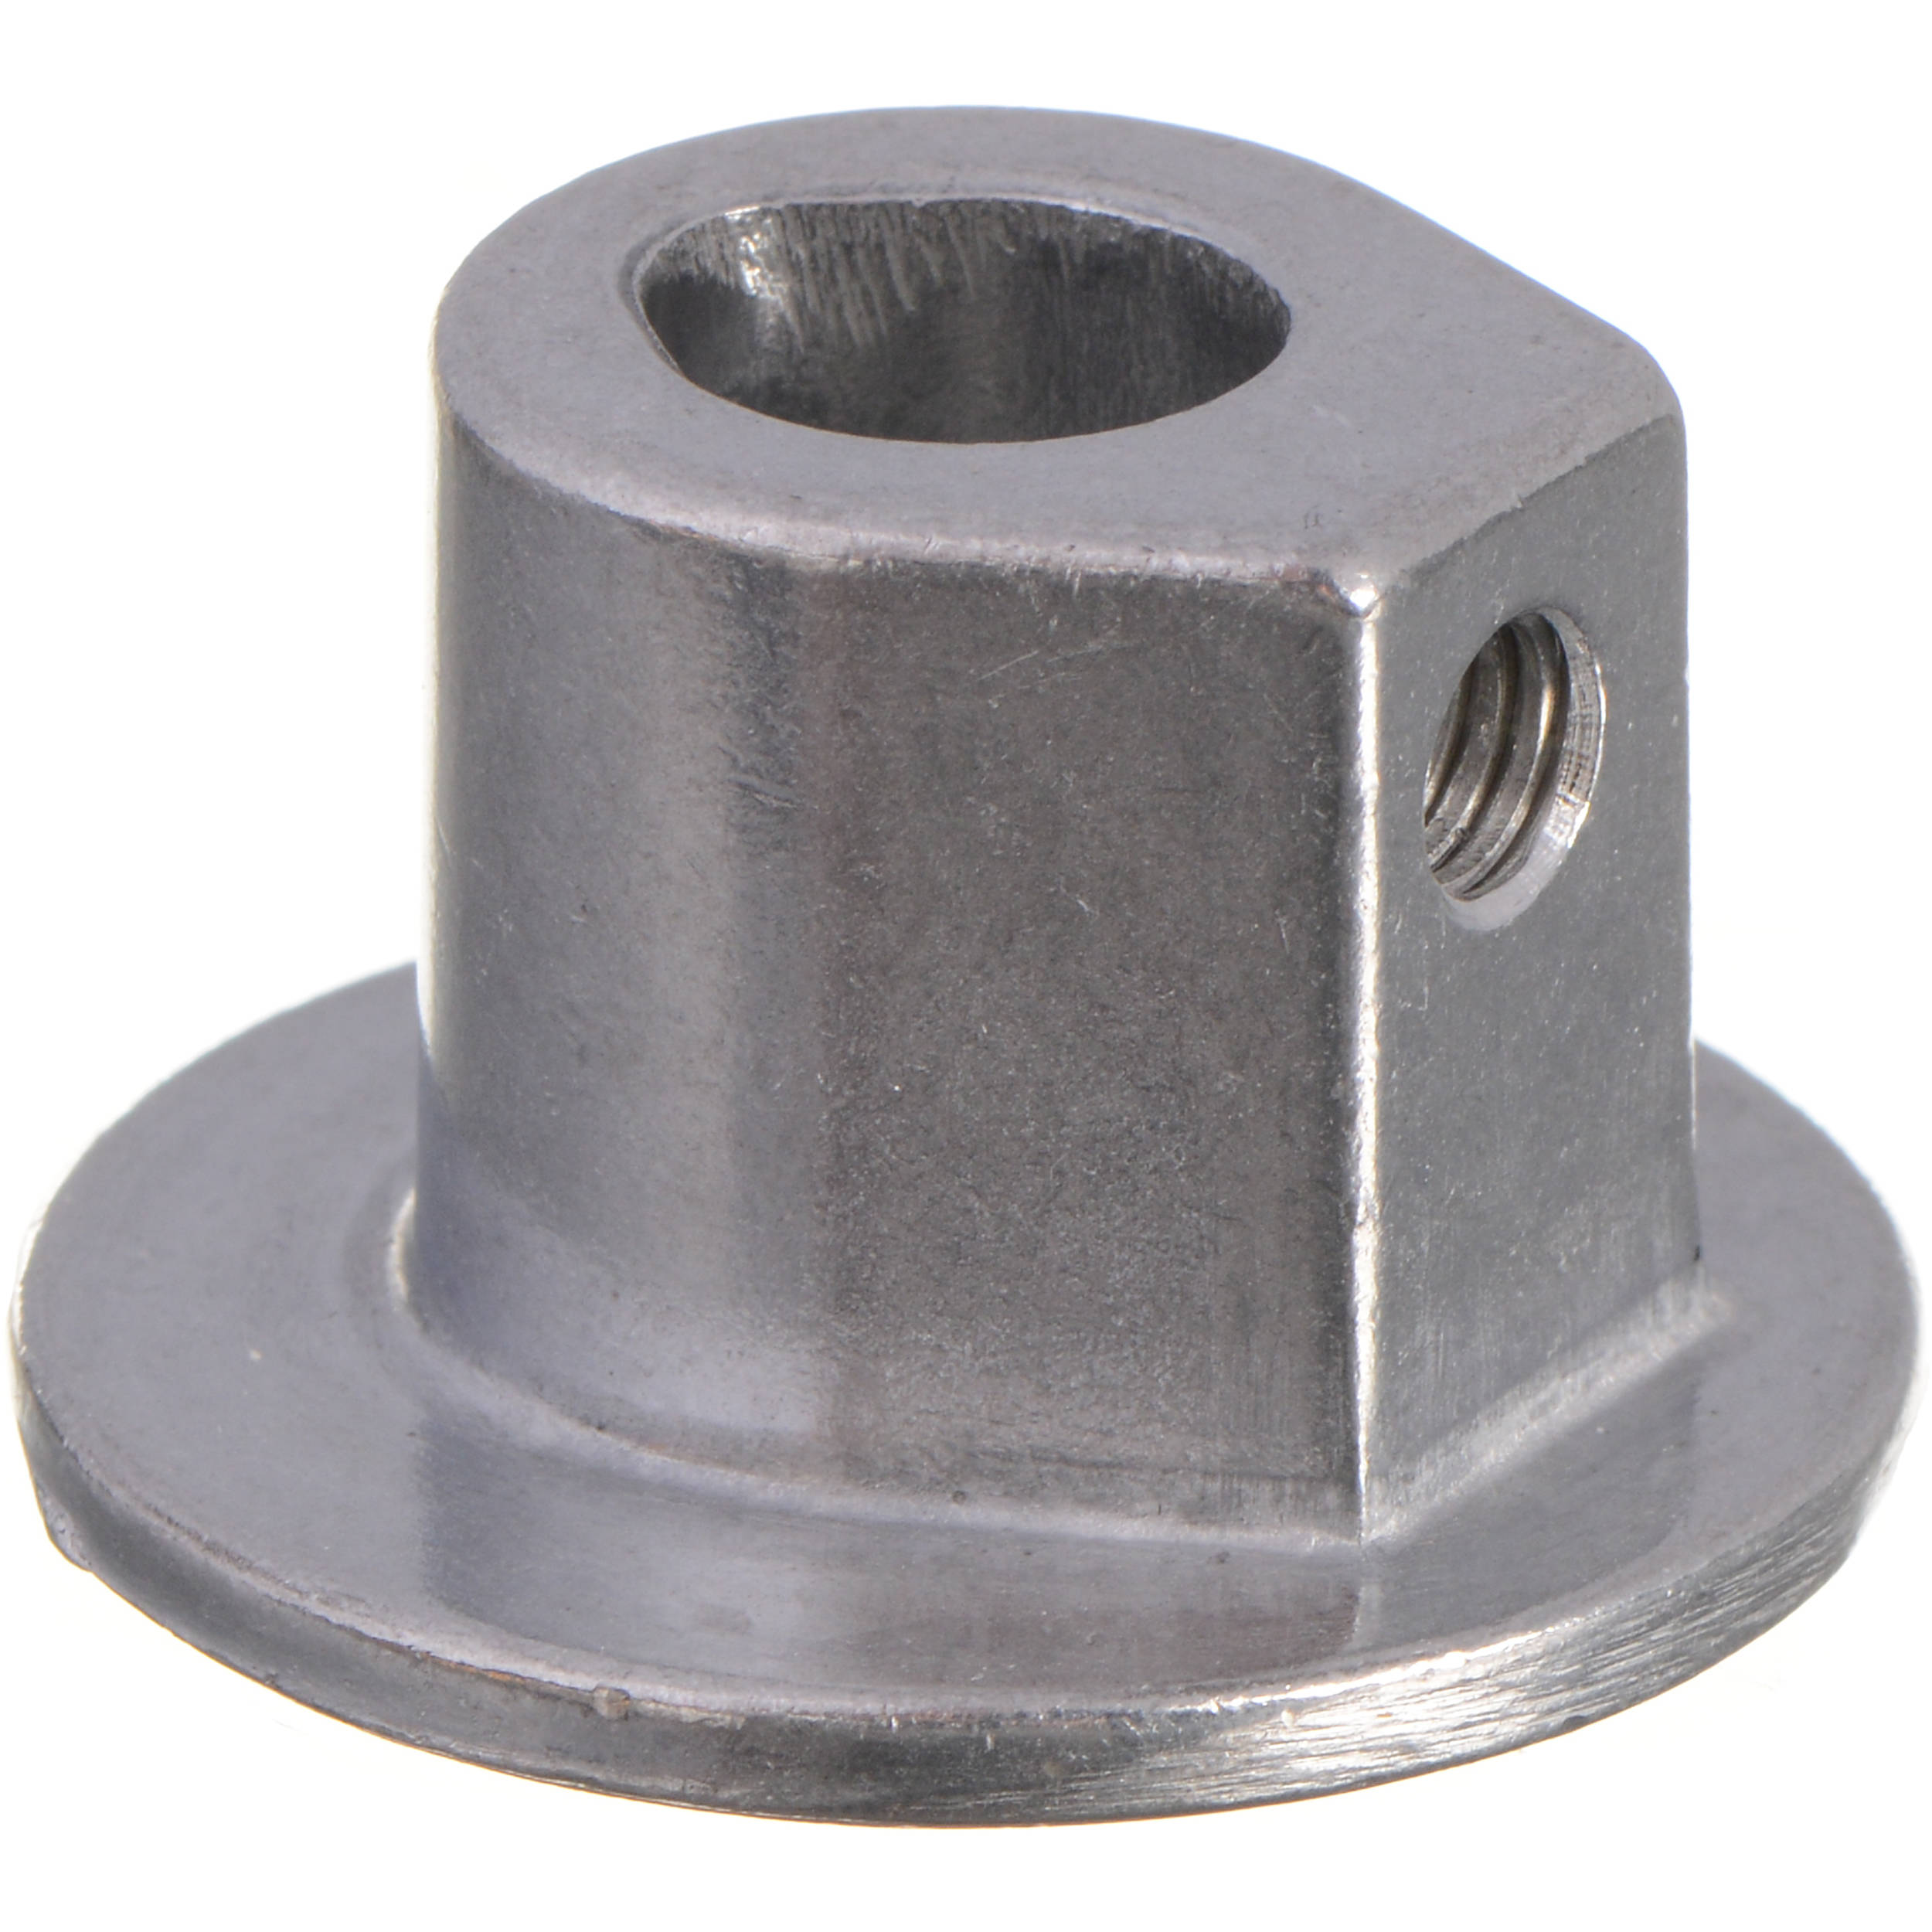 Roland C6400022r0 Upper Clutch For Cy 5 1158532